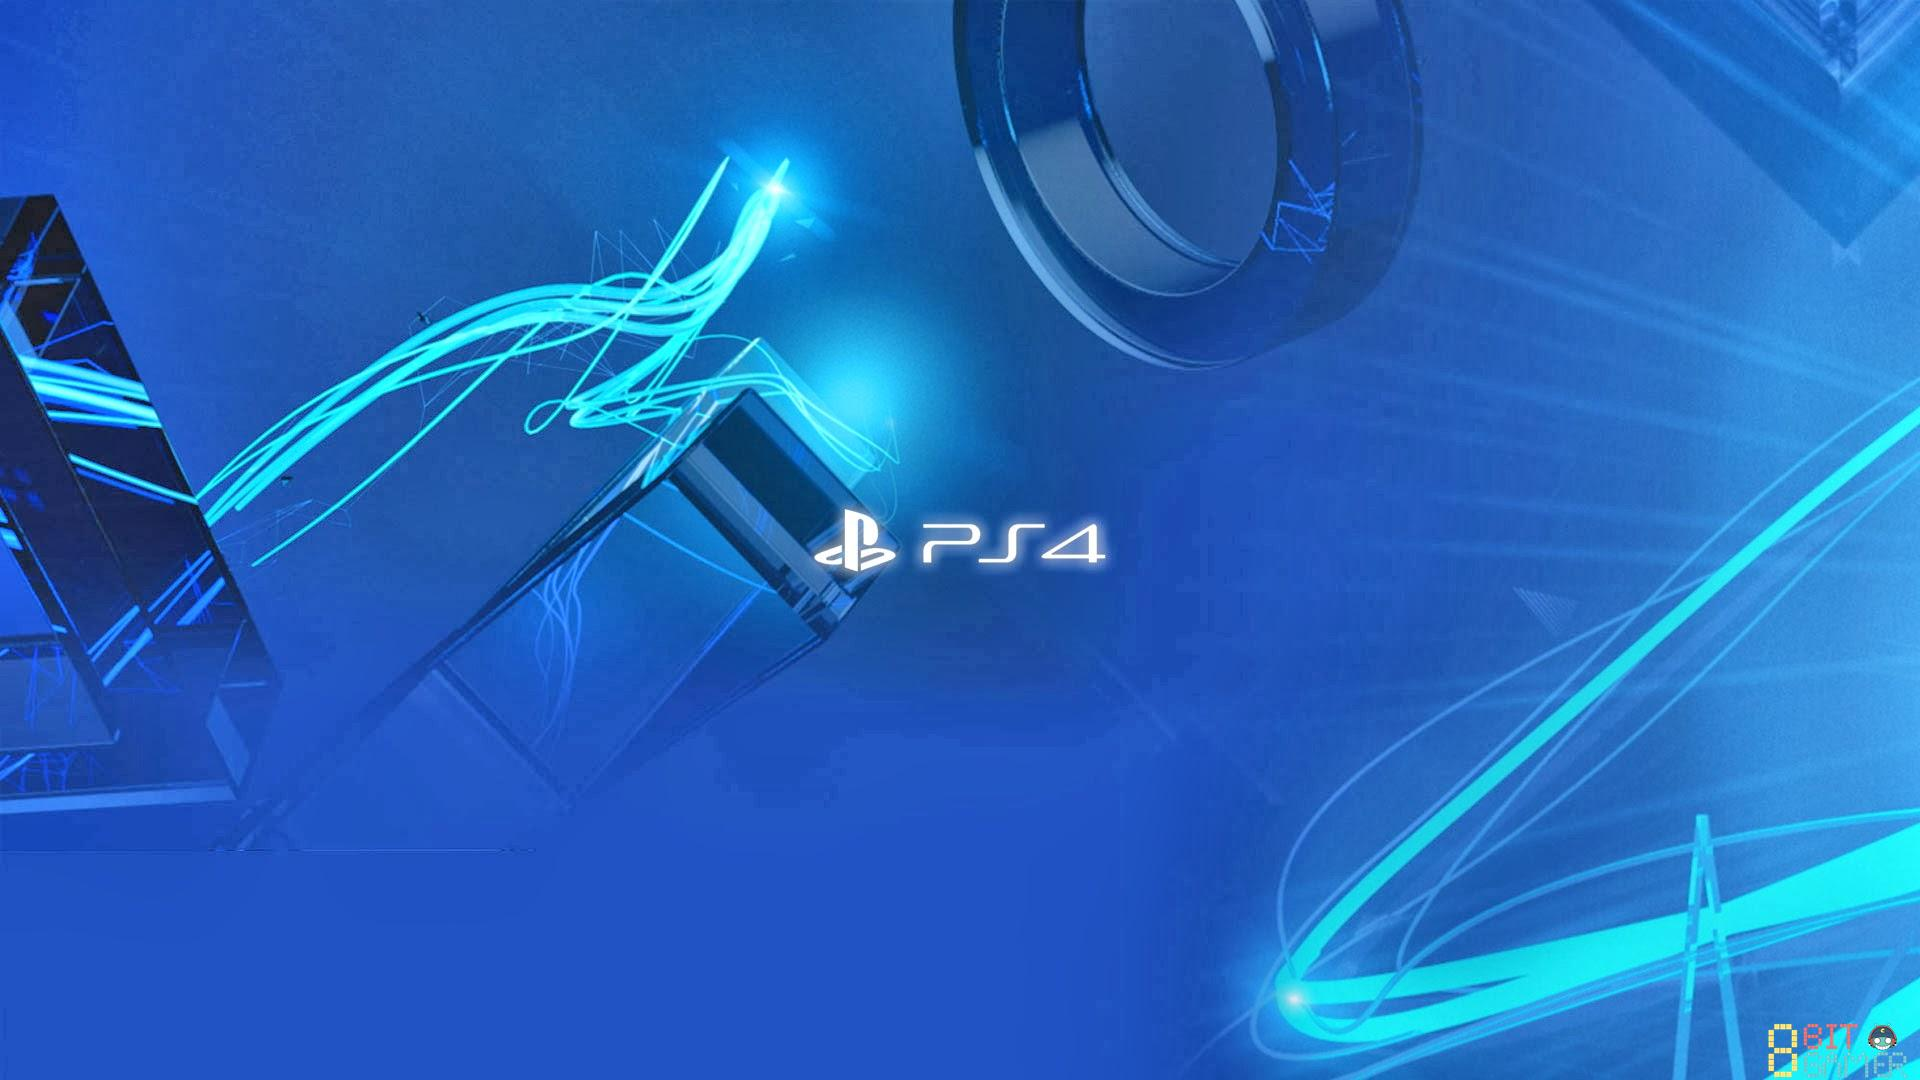 Ps4 | Live HD Ps4 Wallpapers, Photos